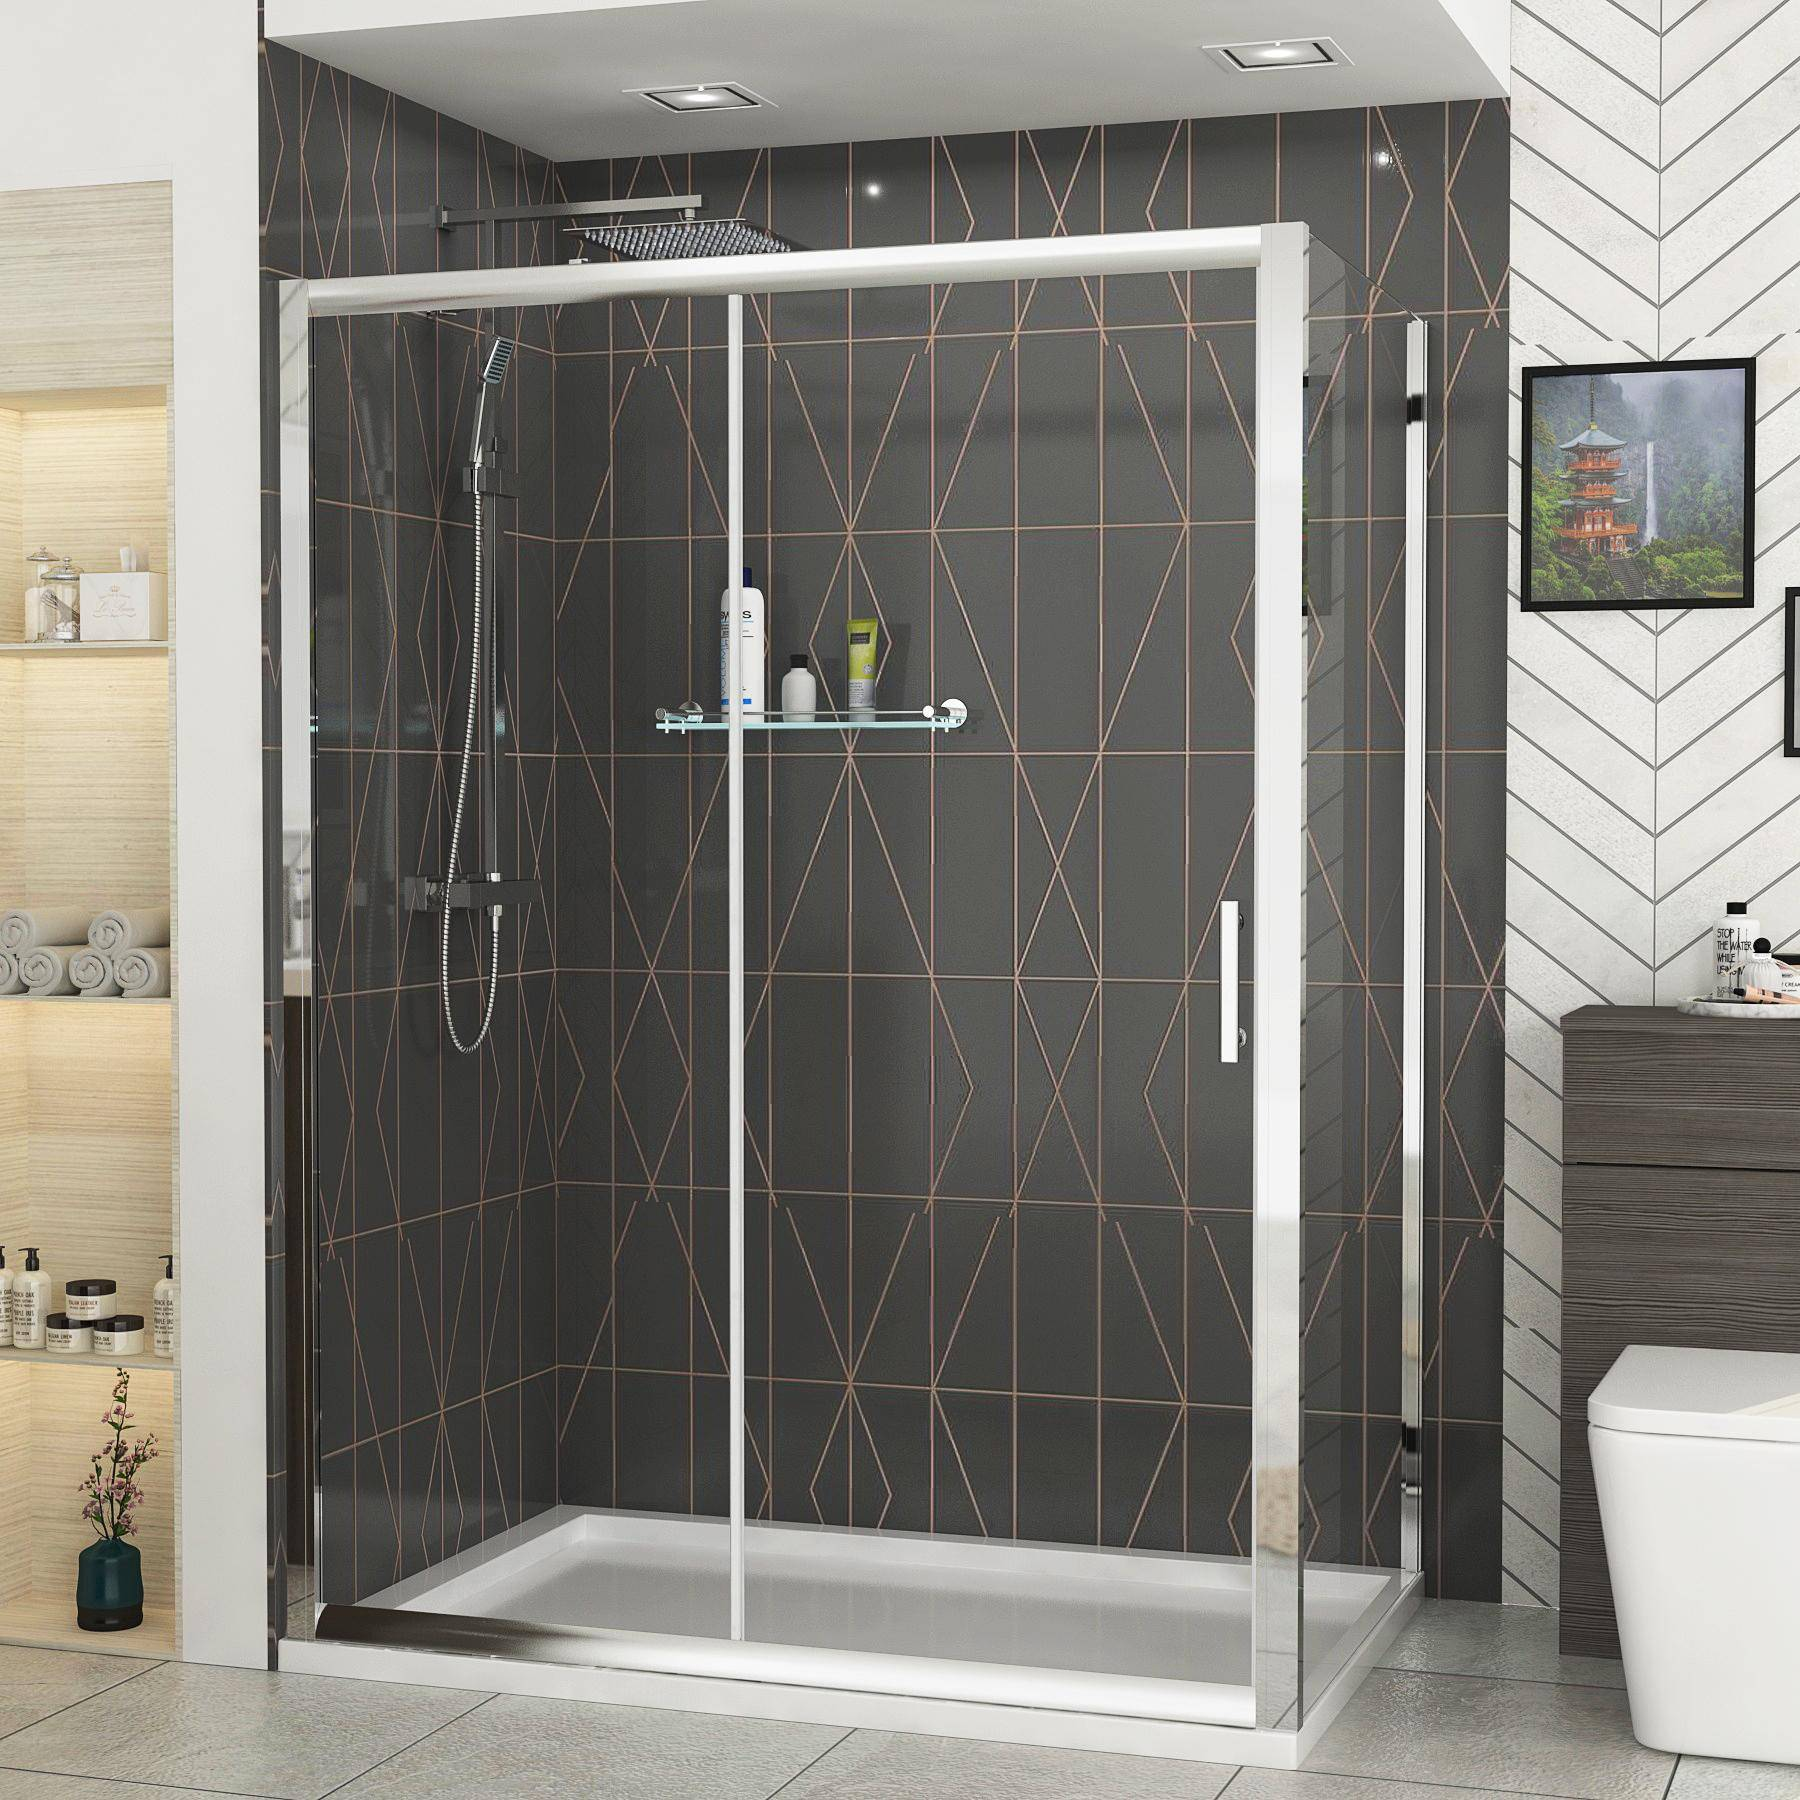 Royal Bathrooms Grand 1000 x 760mm Sliding Door Rectangle Shower Enclosure wih Pearlstone Tray